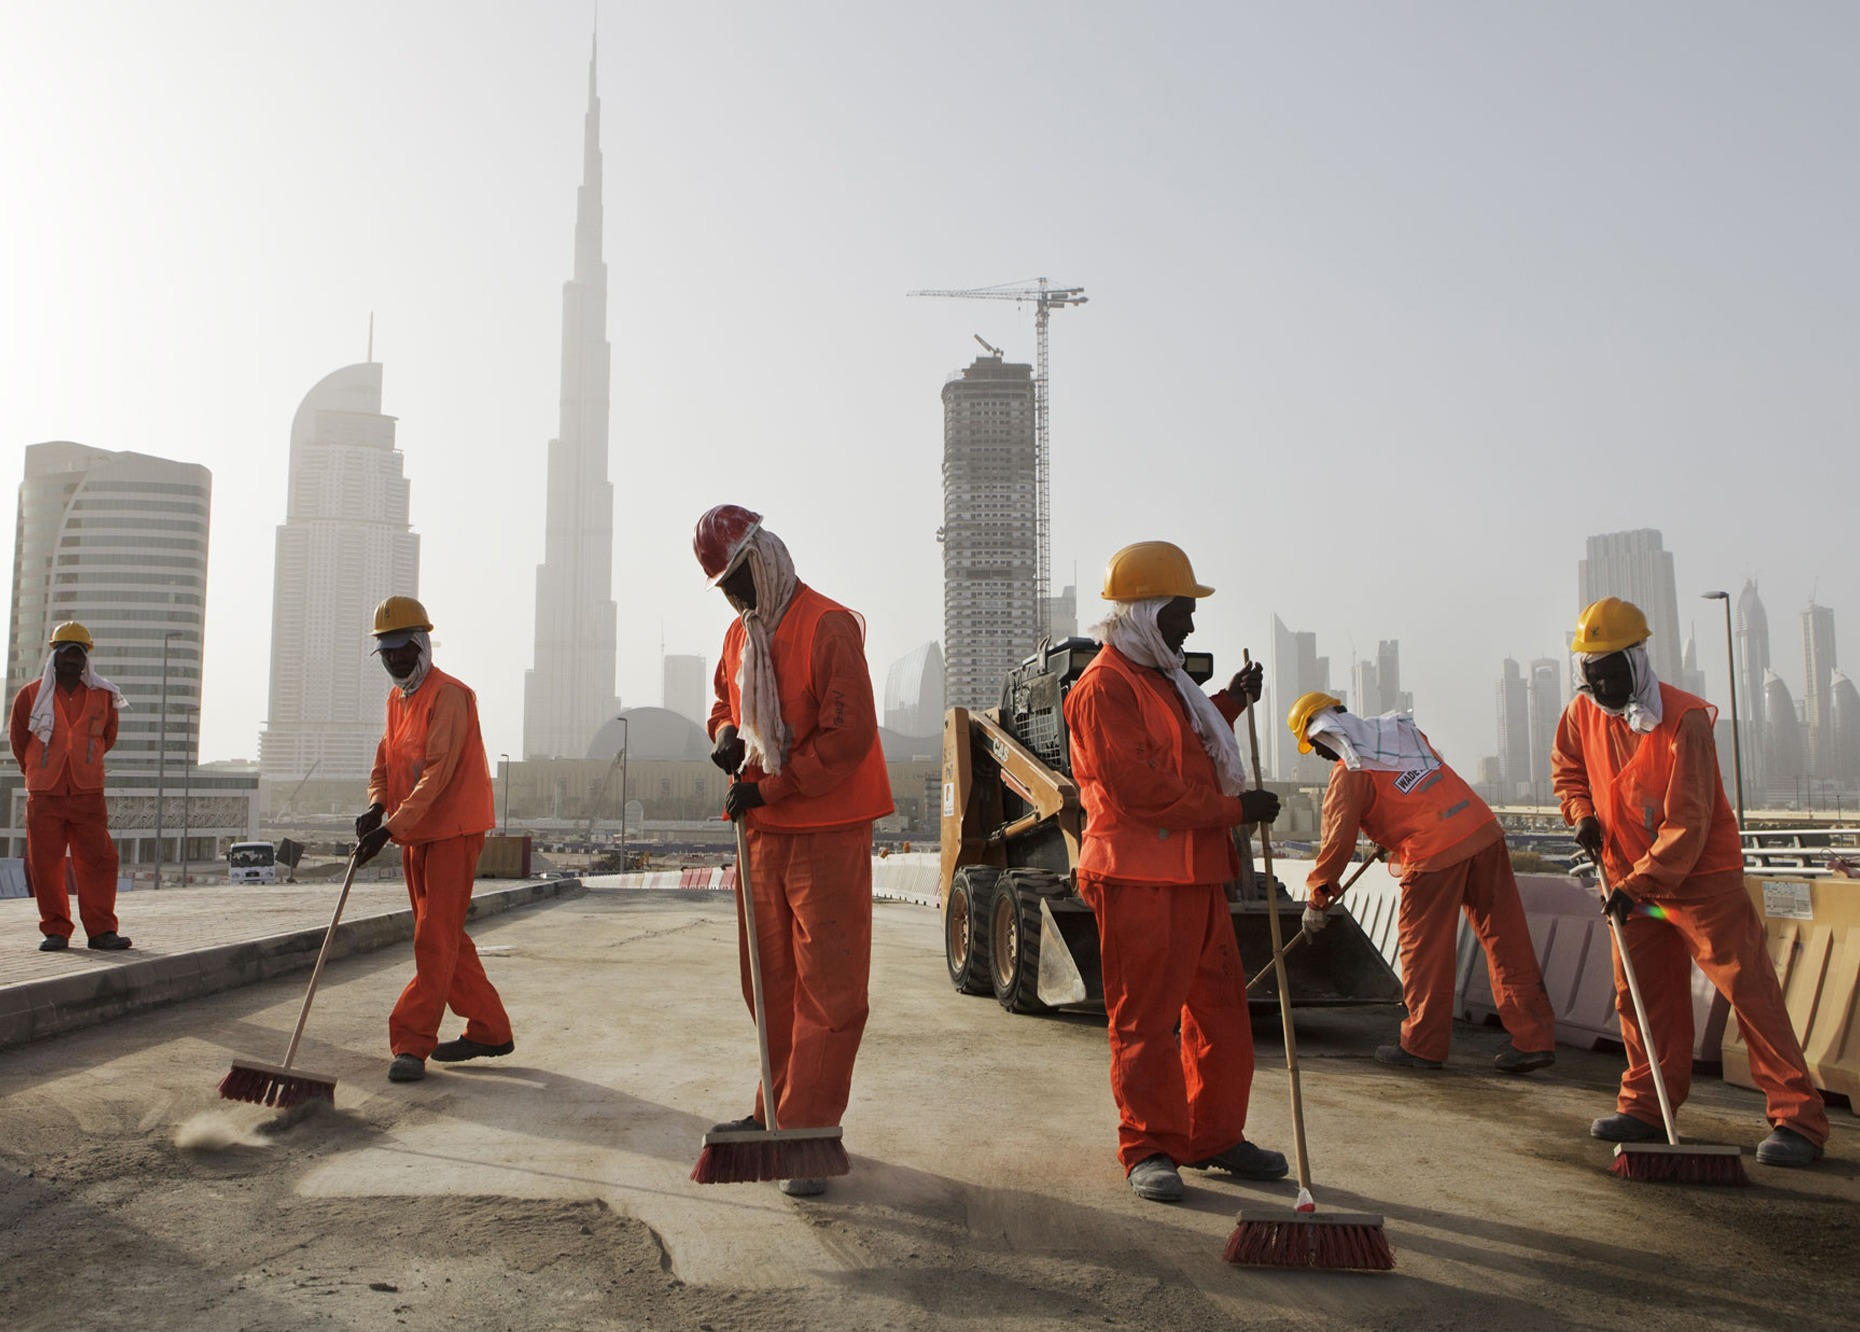 UNITED ARAB EMIRATES. 2012. Dubai.  With the world's tallest skyscraper Burj Khalifa in the background, Pakistani workers clean up a finished construction site on a road bridge in Business Bay area.   This story explores the world of guest workers in the arab Gulf oil states such as United Arab Emirates, Qatar and Kuwait. While marketing itself as a luxury playgrounds of tourism and business, close to 90% of UAE and Qatar's population are foreign workers.  Most of these workers come from far poorer nations such as India, Bangladesh, Philippines and Nepal, and the workers often endure very difficult employment and living conditions. Oftentimes parents will leave their home country for a decade or more to try to build up savings for their family back home, putting a big strain on family relations.   The World Bank estimates that yearly sum of remittances (the money being sent home by foreign guest workers) amounts to more than double all official foreign aid globally.